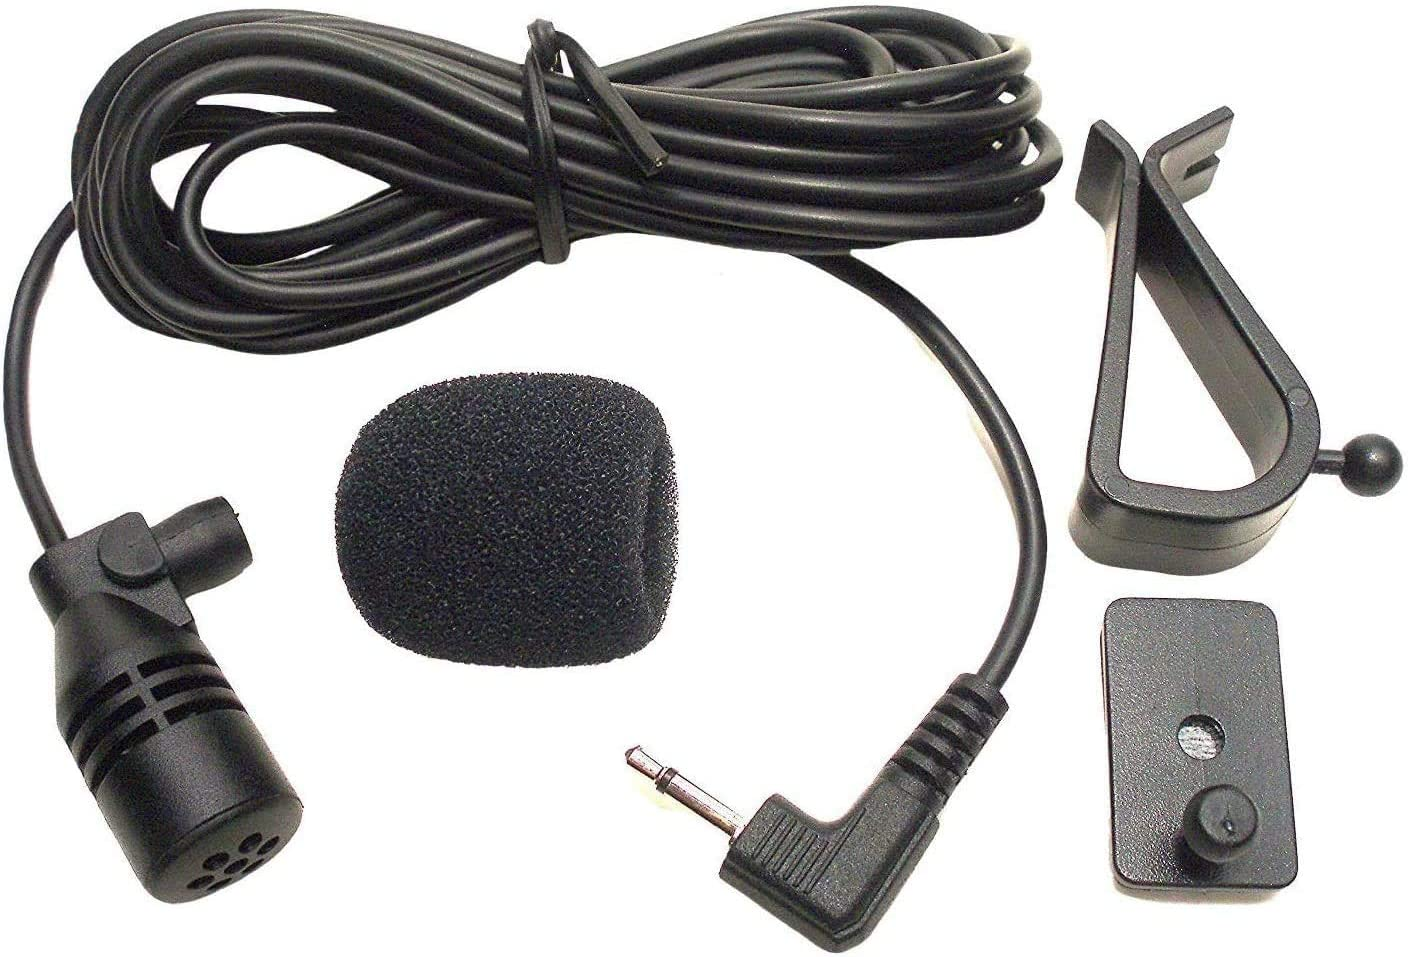 AVH-W4500NEX New item Microphone Mic 2.5mm Compatible Sale Special Price for DMH-150 Pioneer